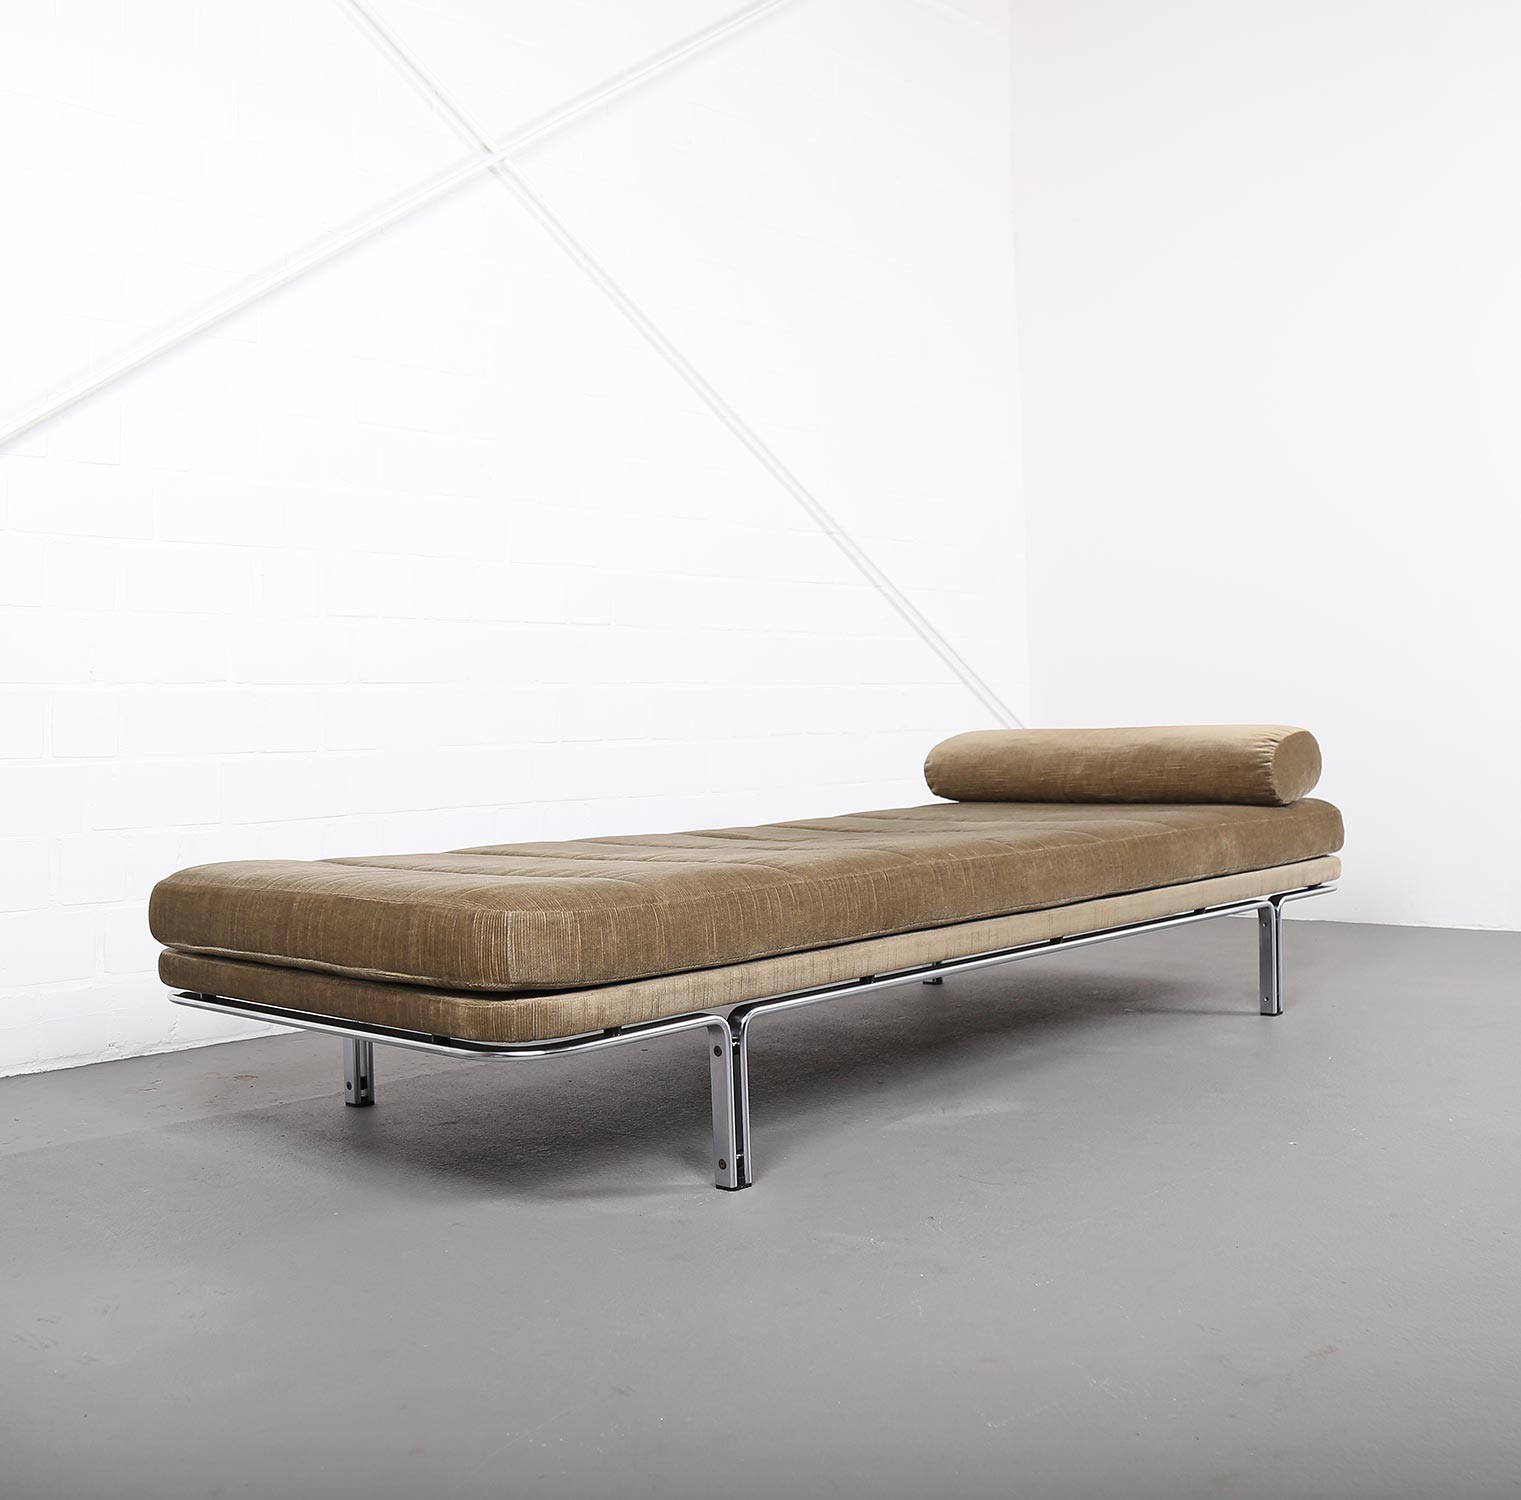 Welches Kopfkissen Daybed Modell 6915 Horst Brüning For Kill International